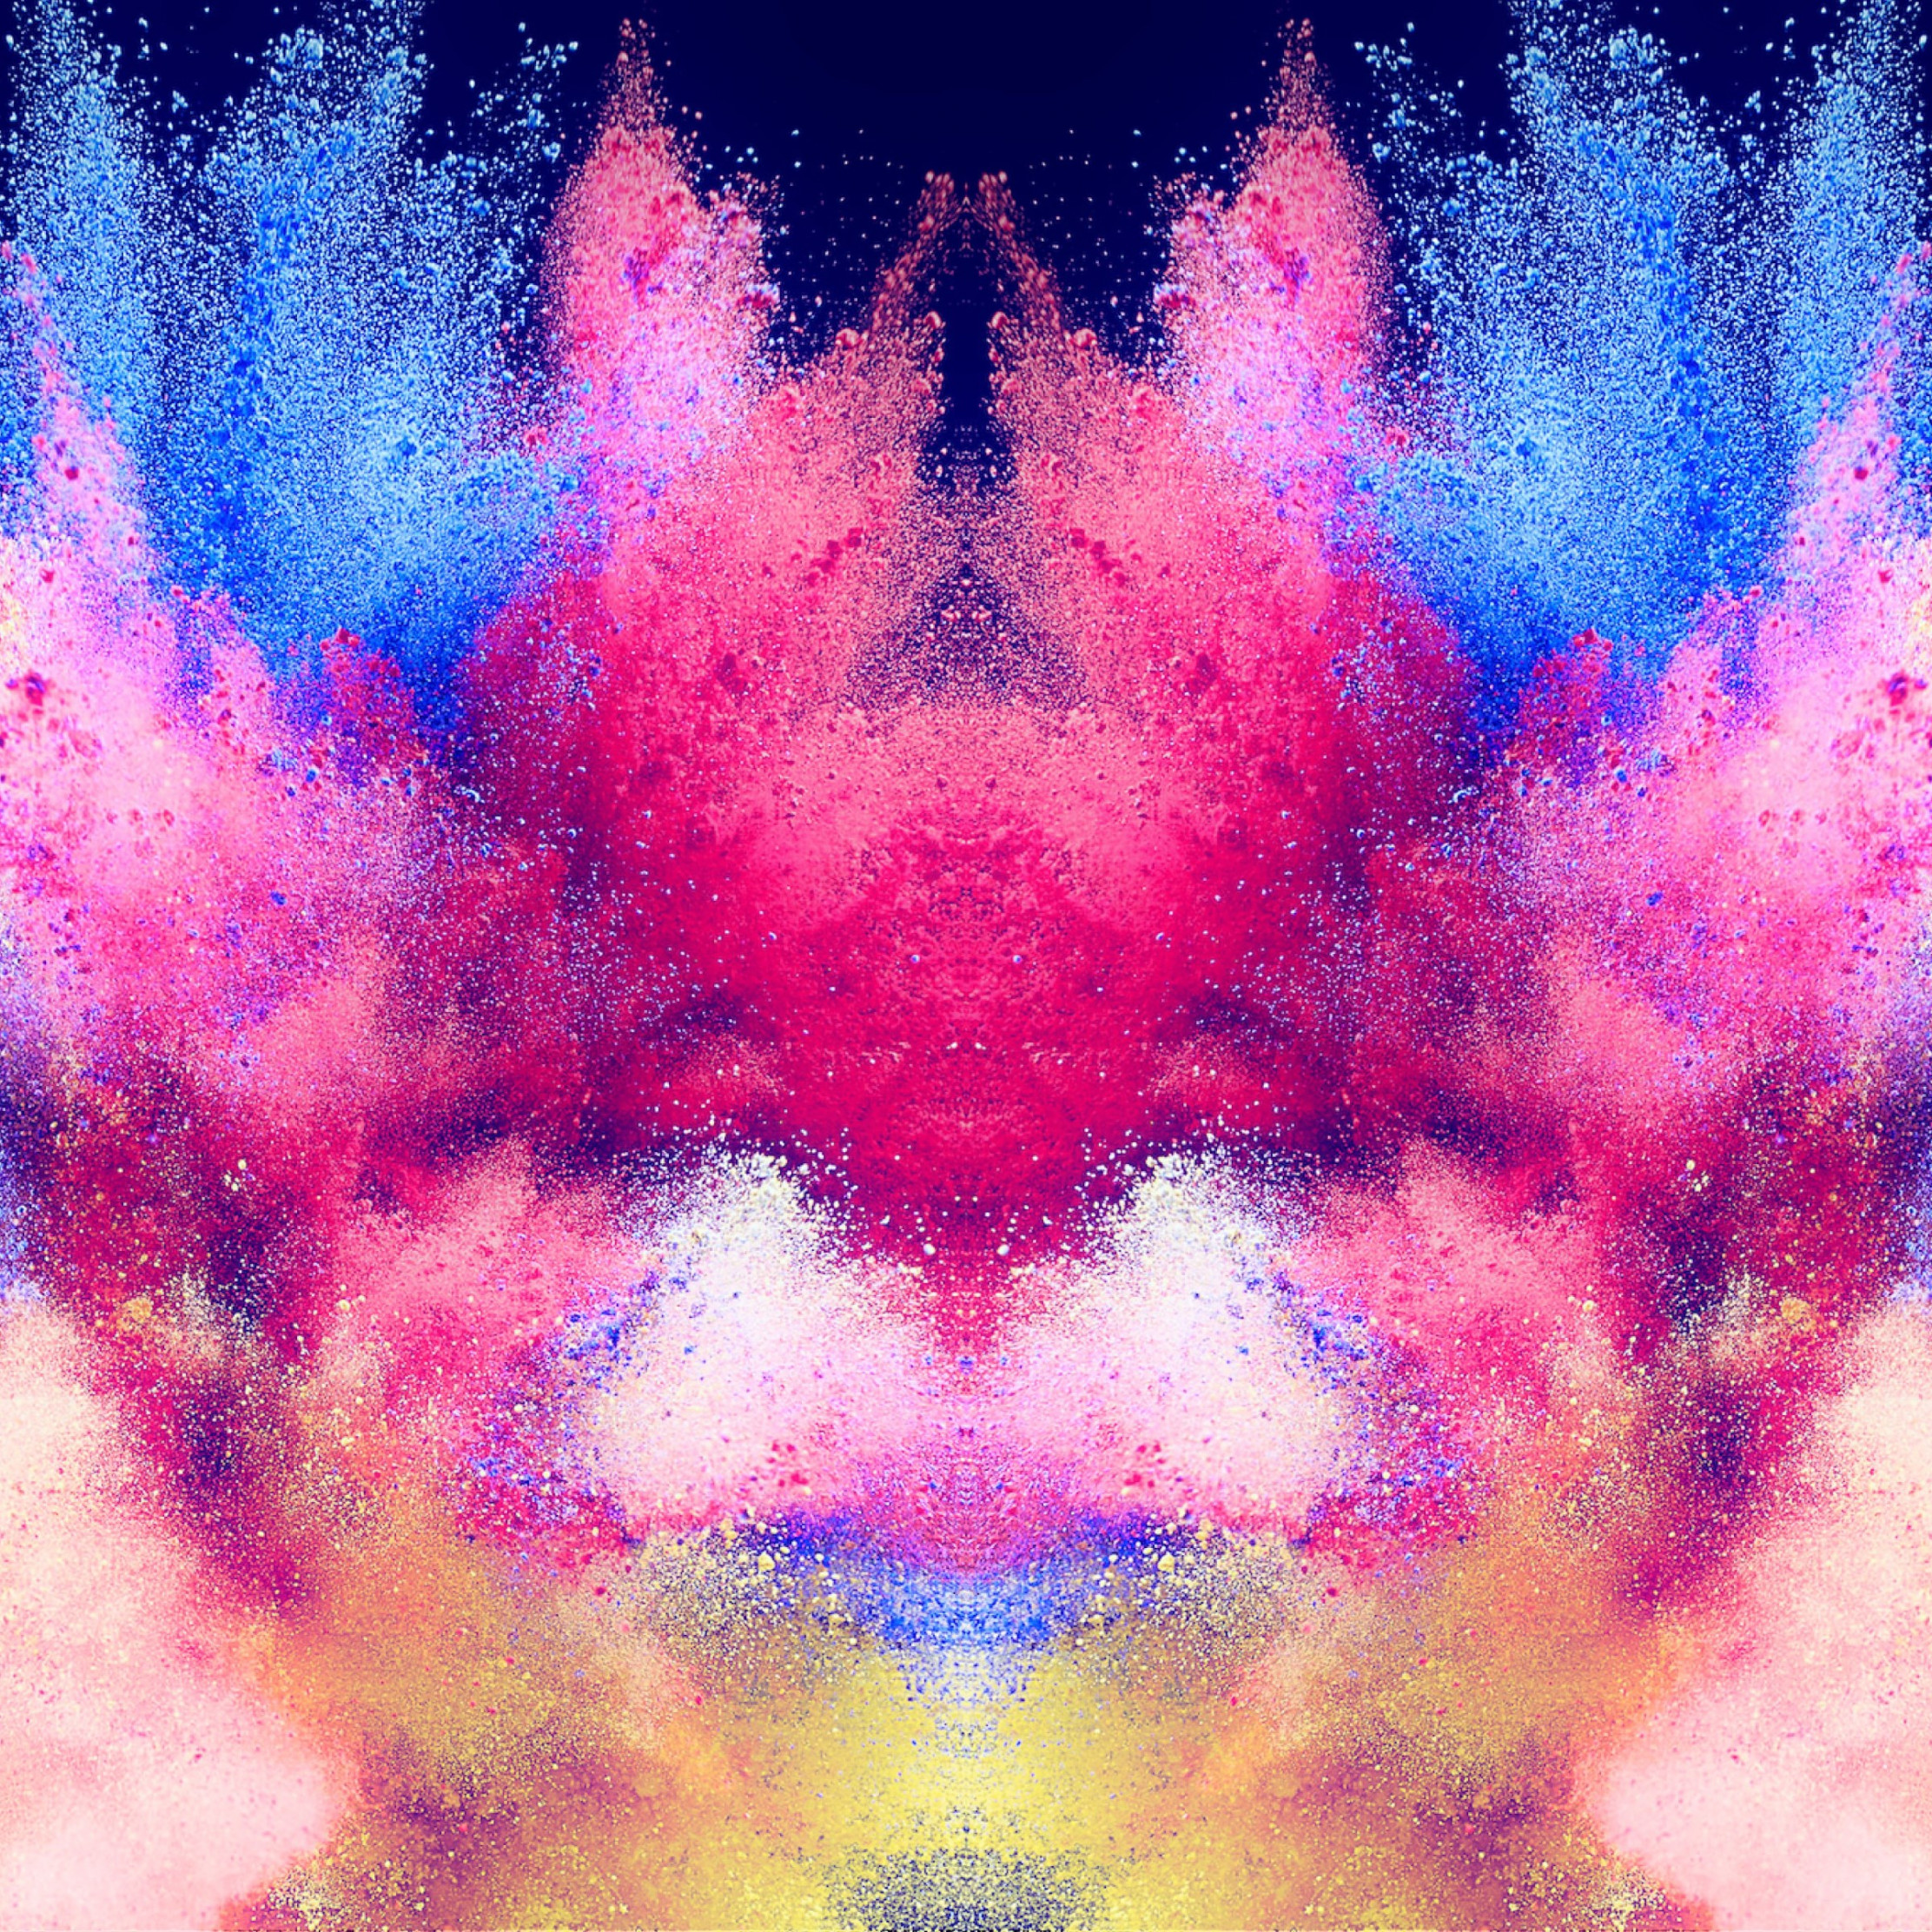 Abstract illustration: Powder colors wallpaper 2224x2224